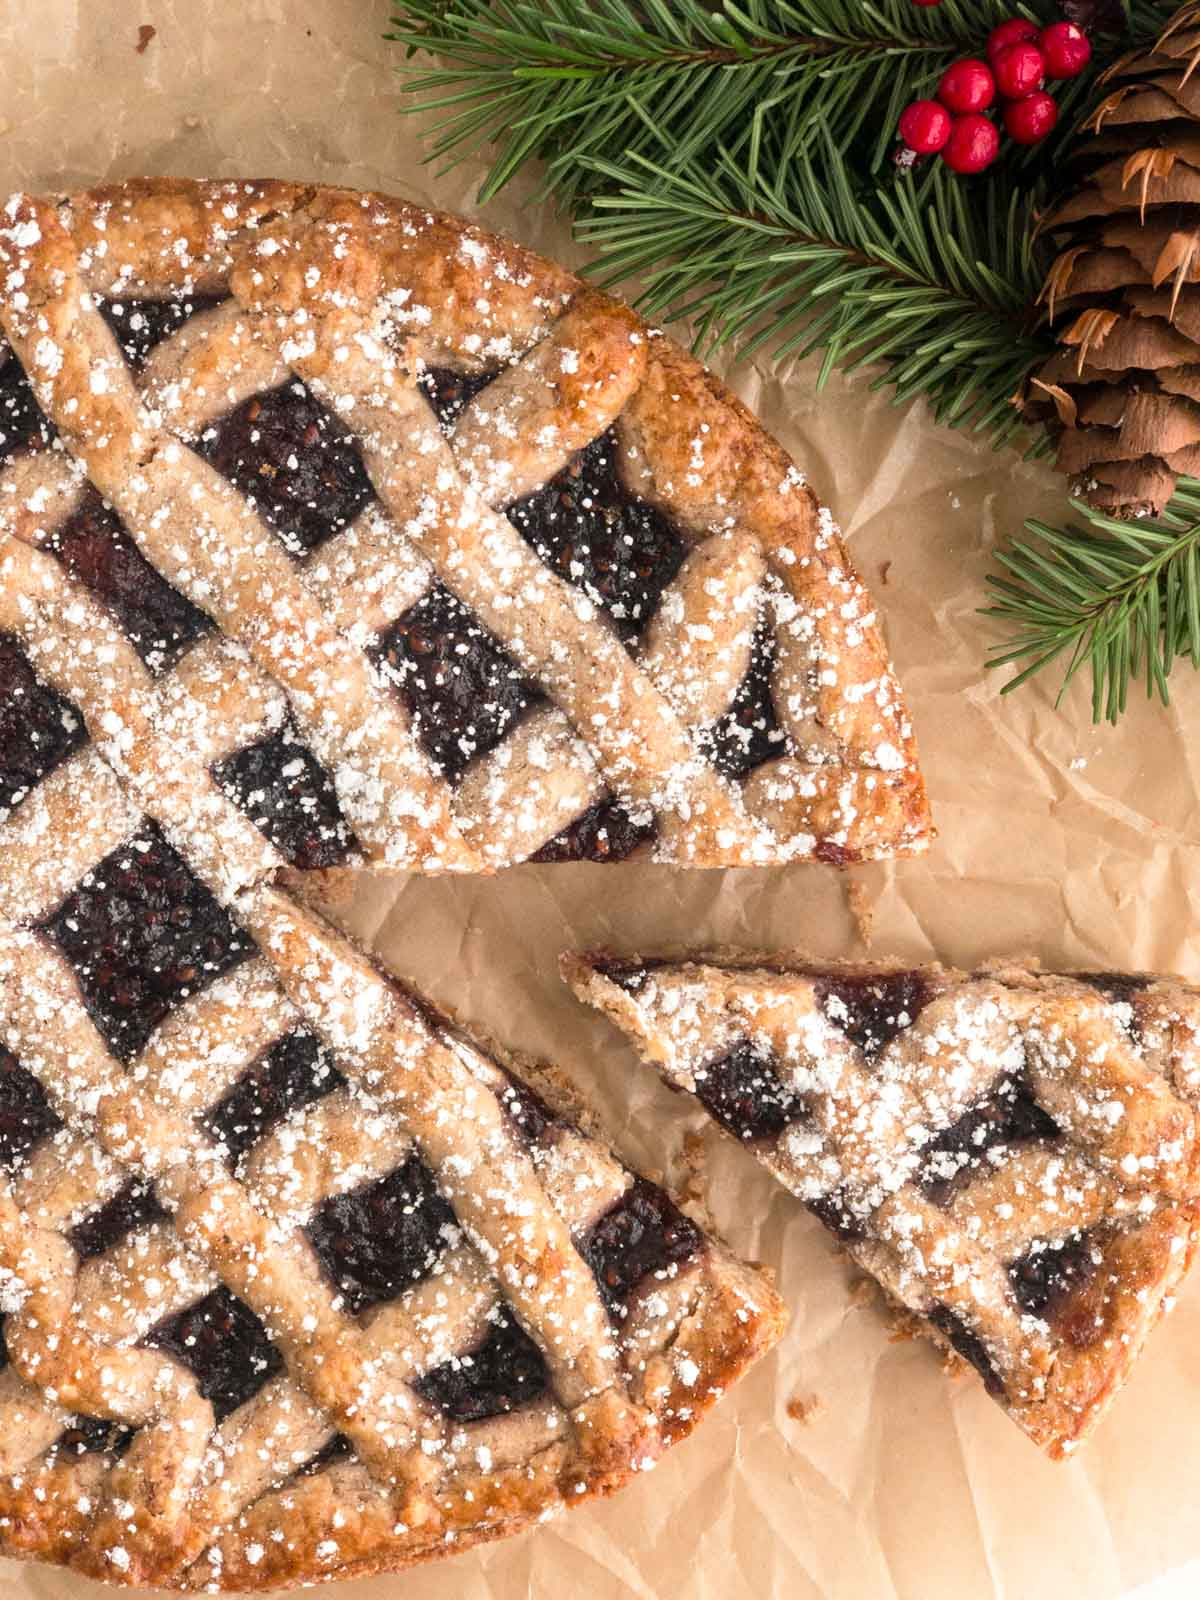 Top view of a Linzer Torte